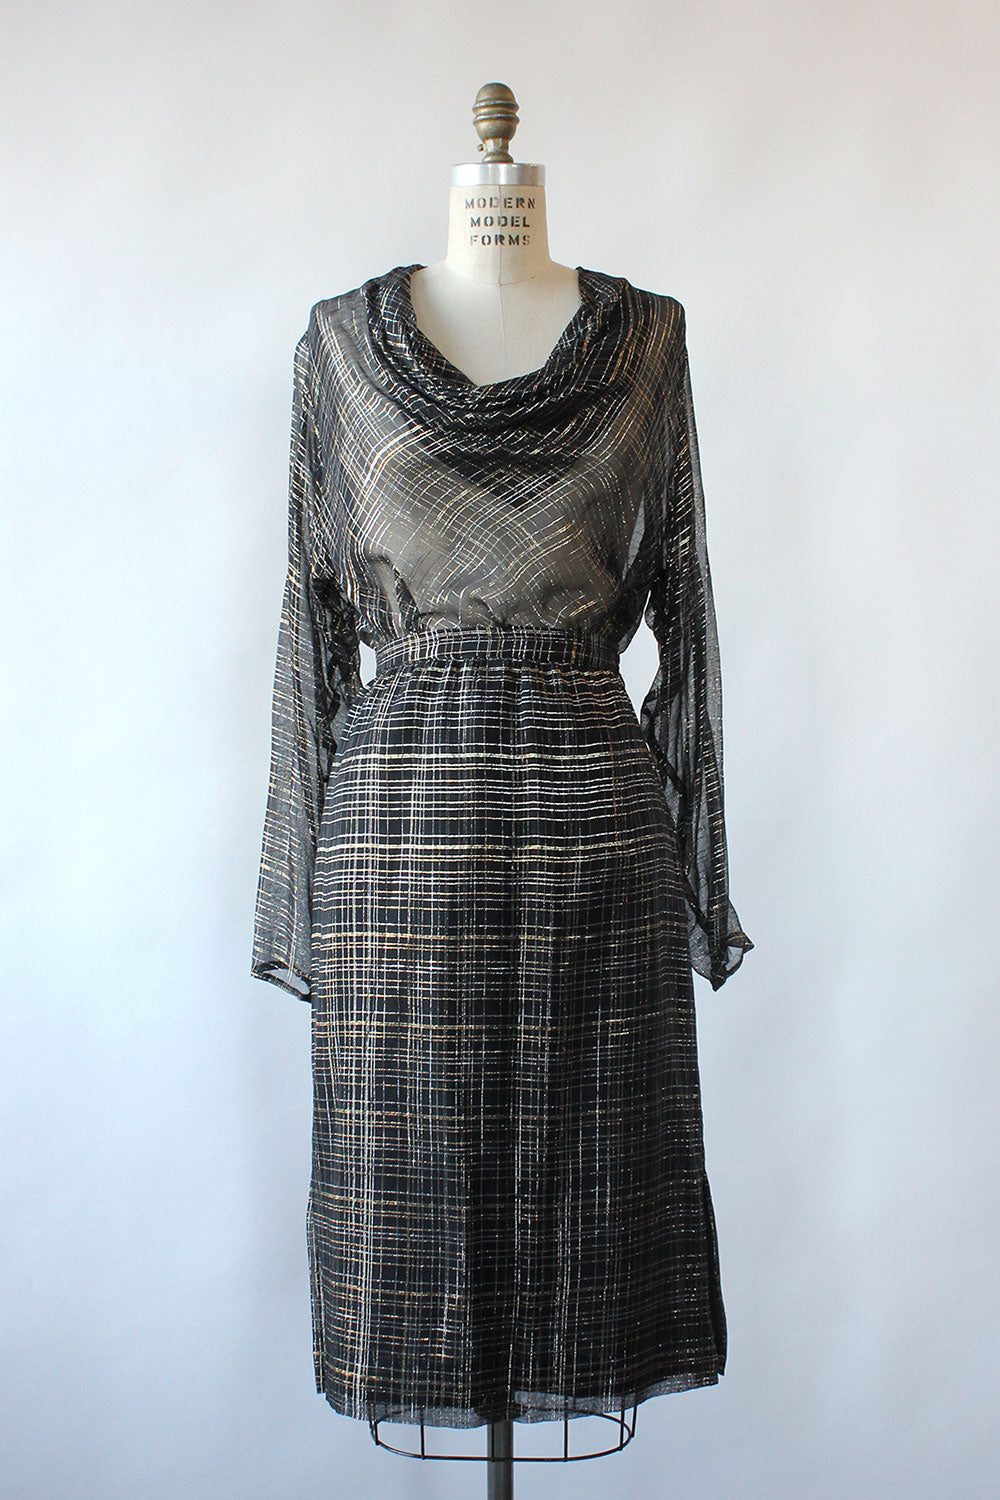 Mixed Metallic Sheer Ensemble M